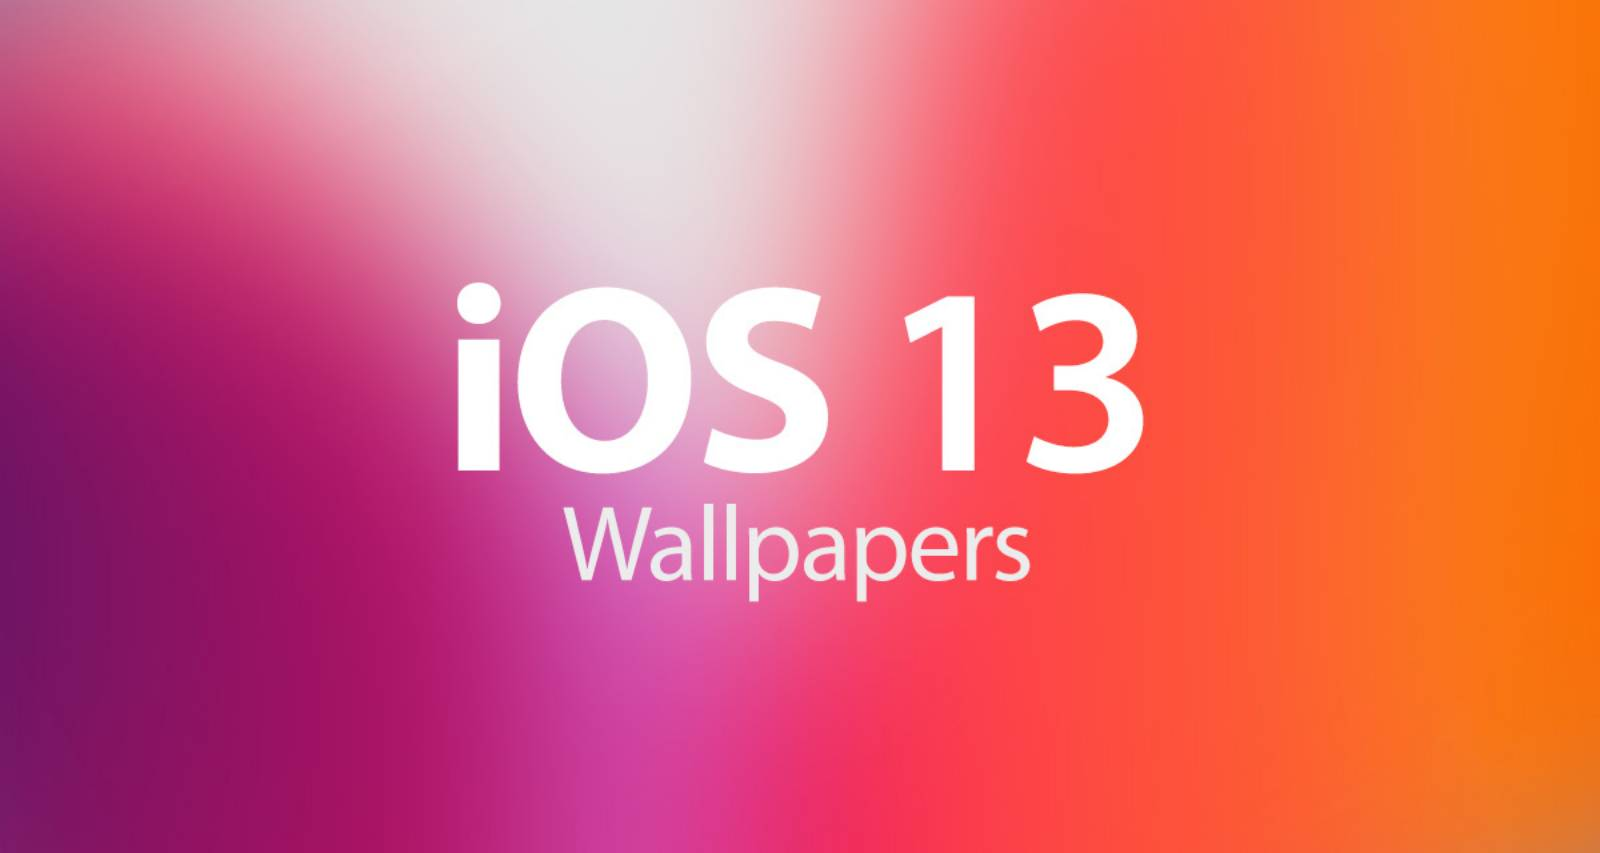 iOS 13 wallpaper download